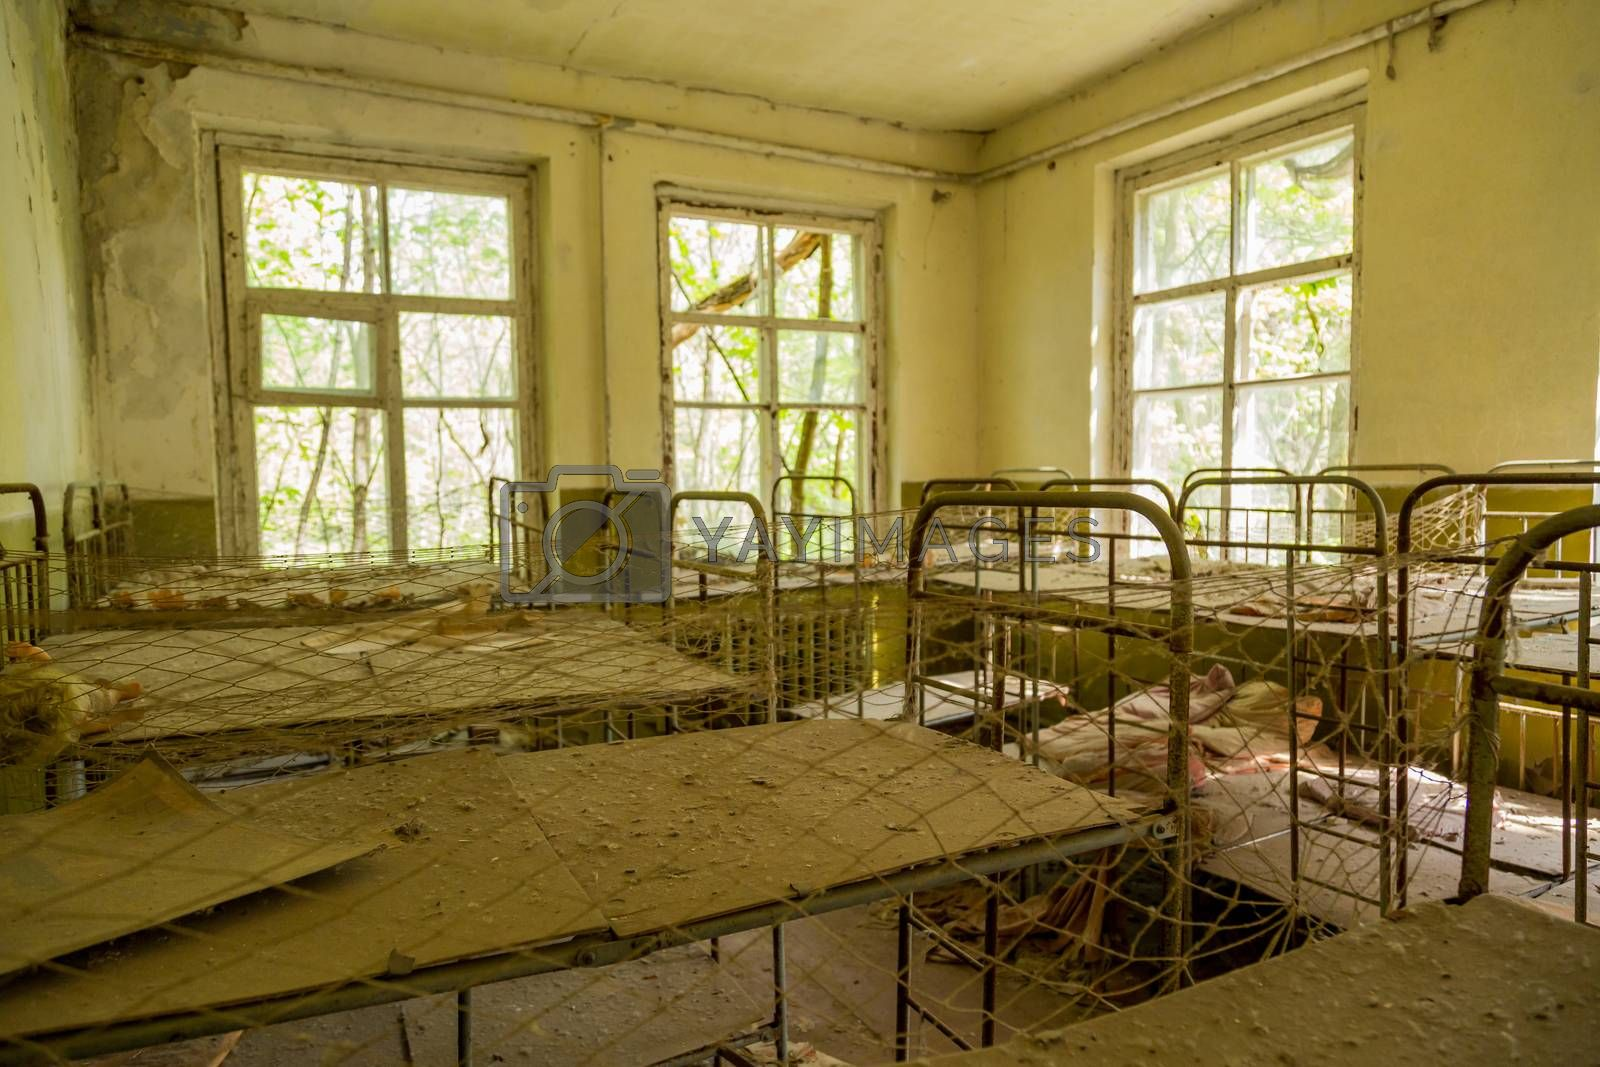 Royalty free image of School in Chernobyl by zittto